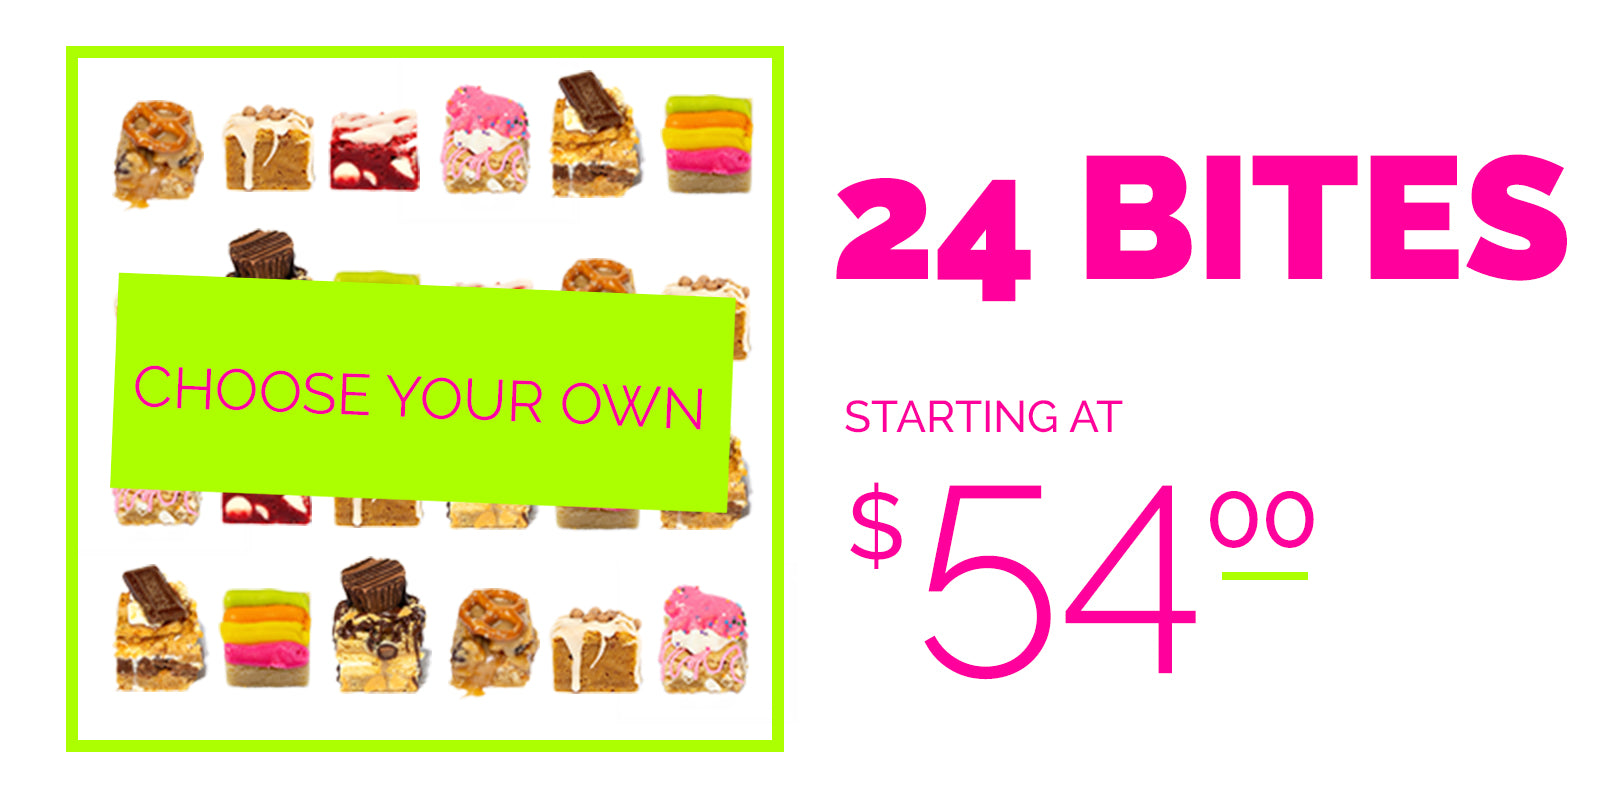 choose your own bites starting at $54